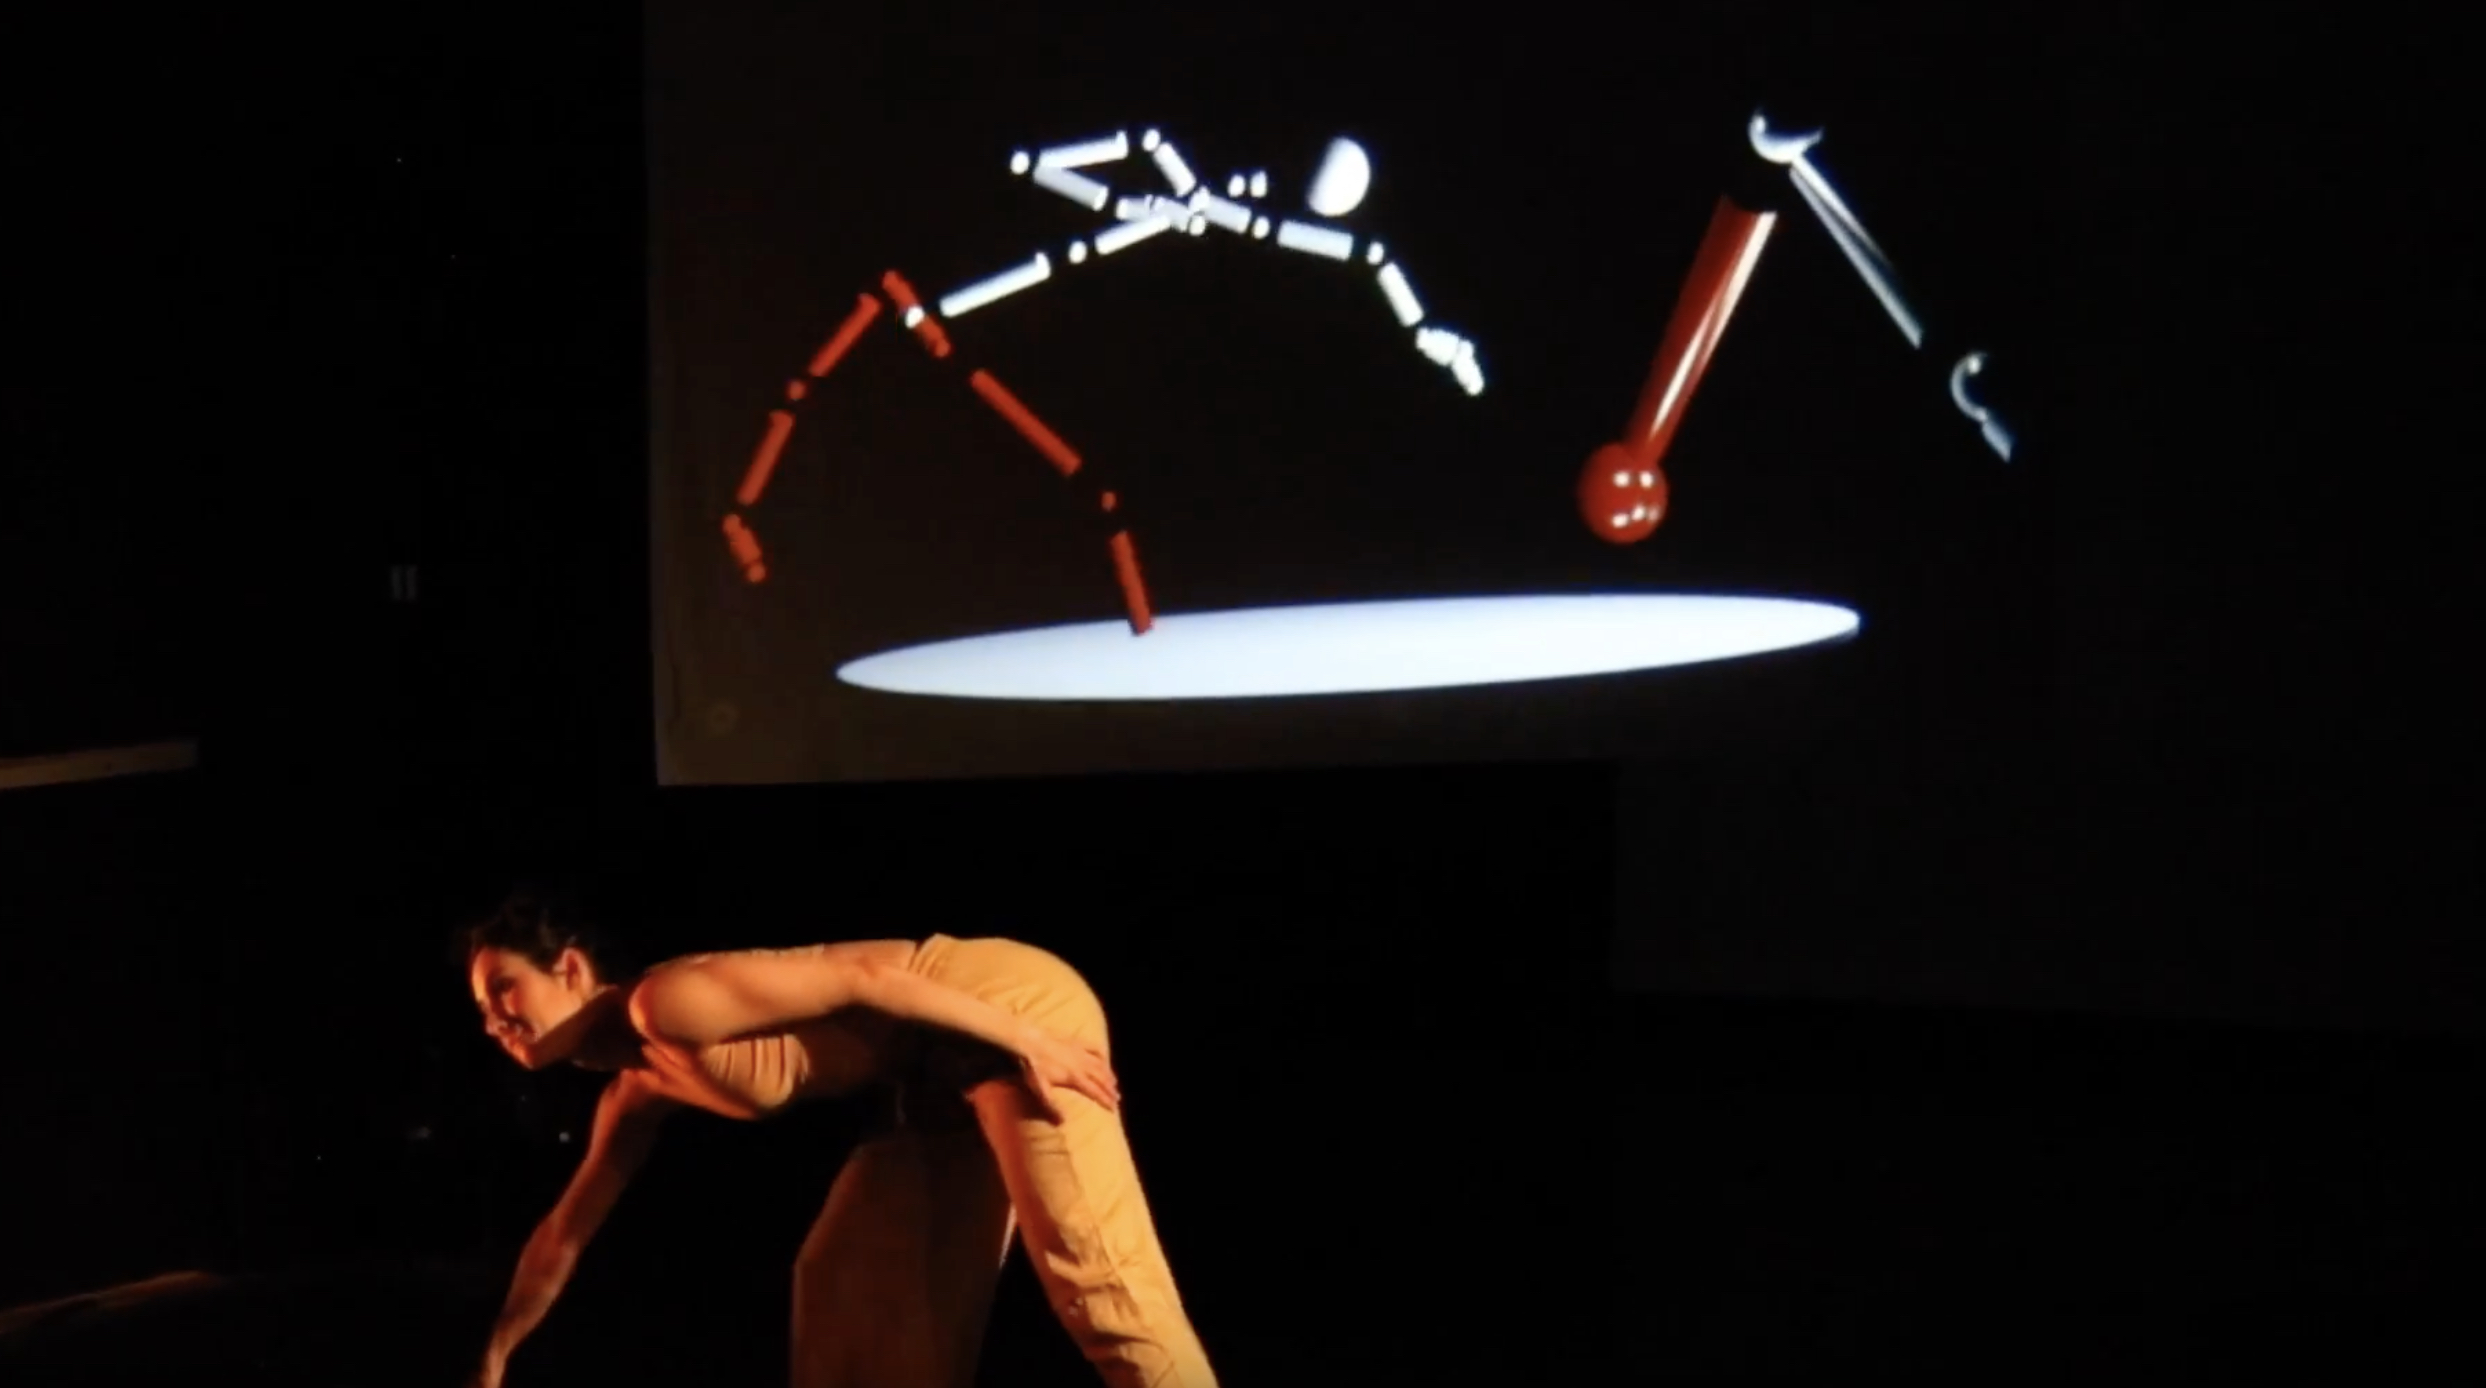 Catie Cuan performing with the concat tool. Still from video by Kevin Barry